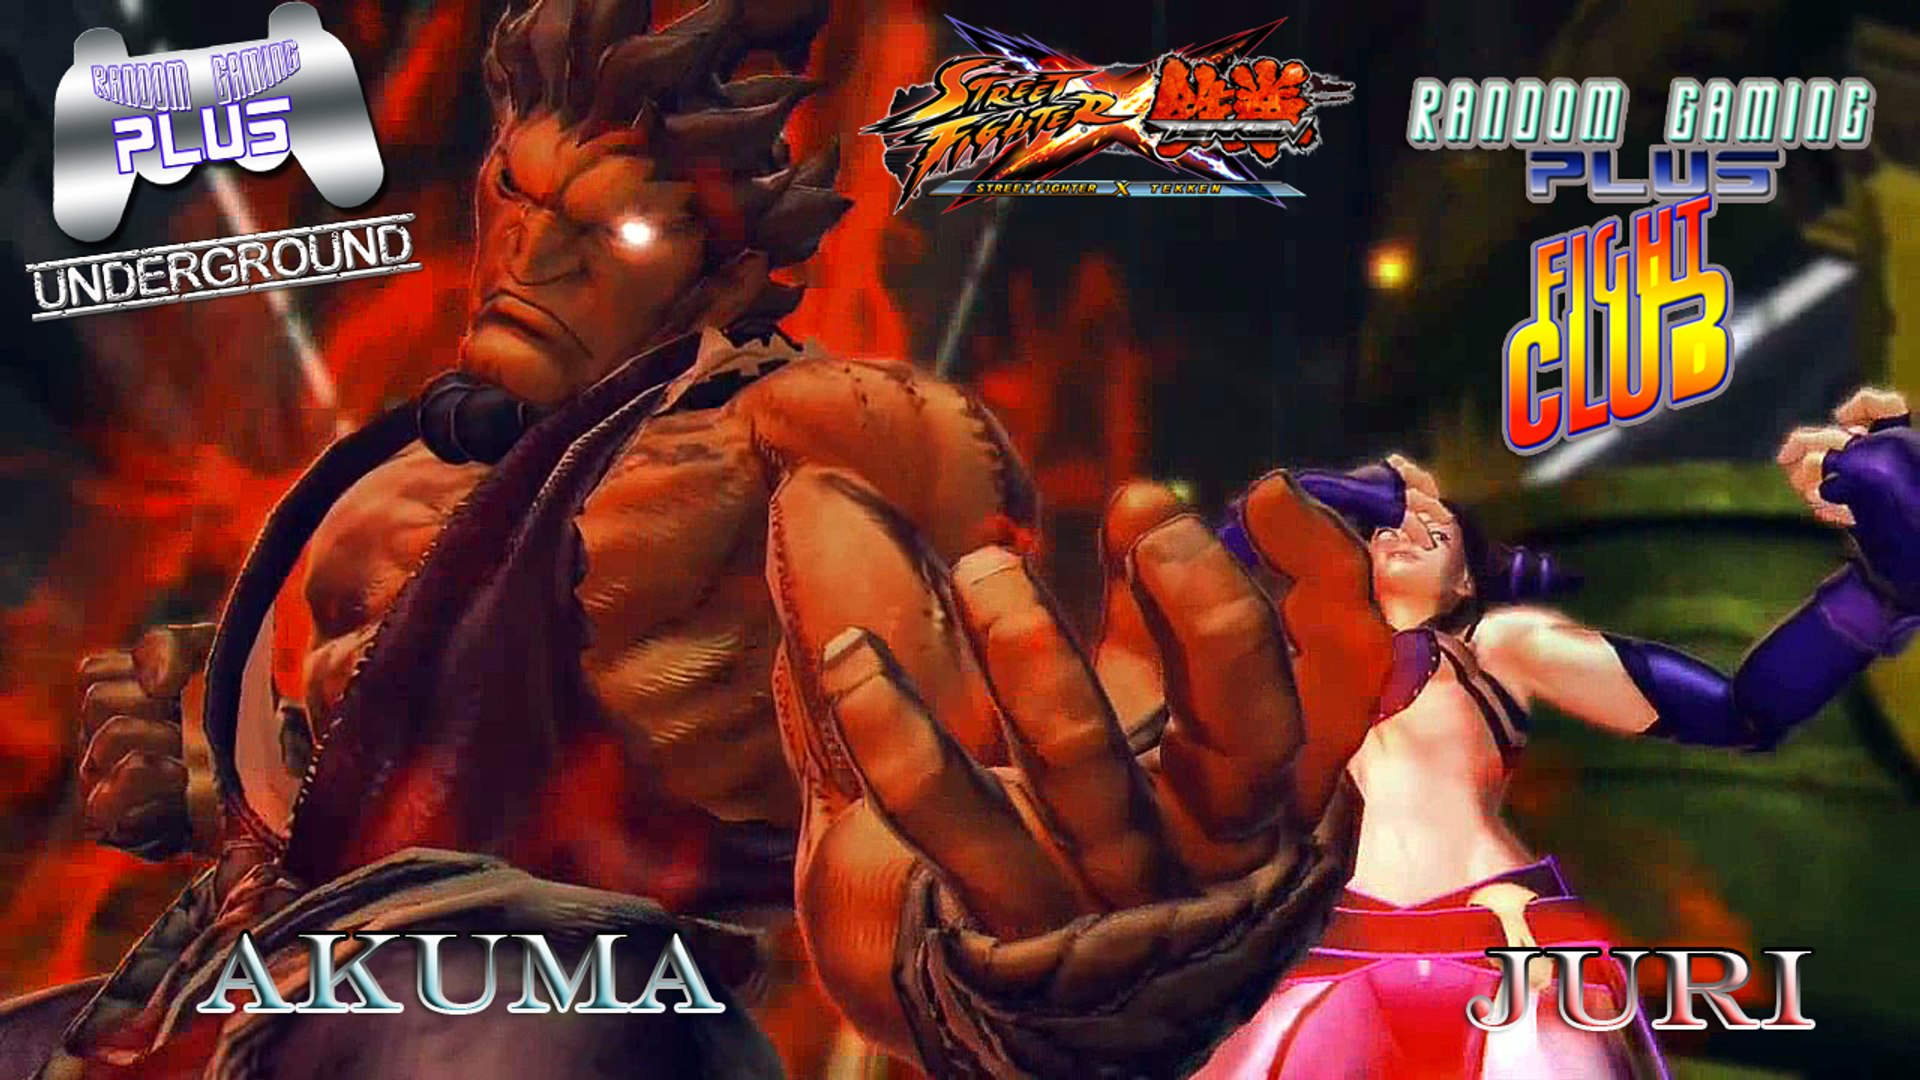 RG Plus Fight Club featuring Akuma & Juri (SFxTek)